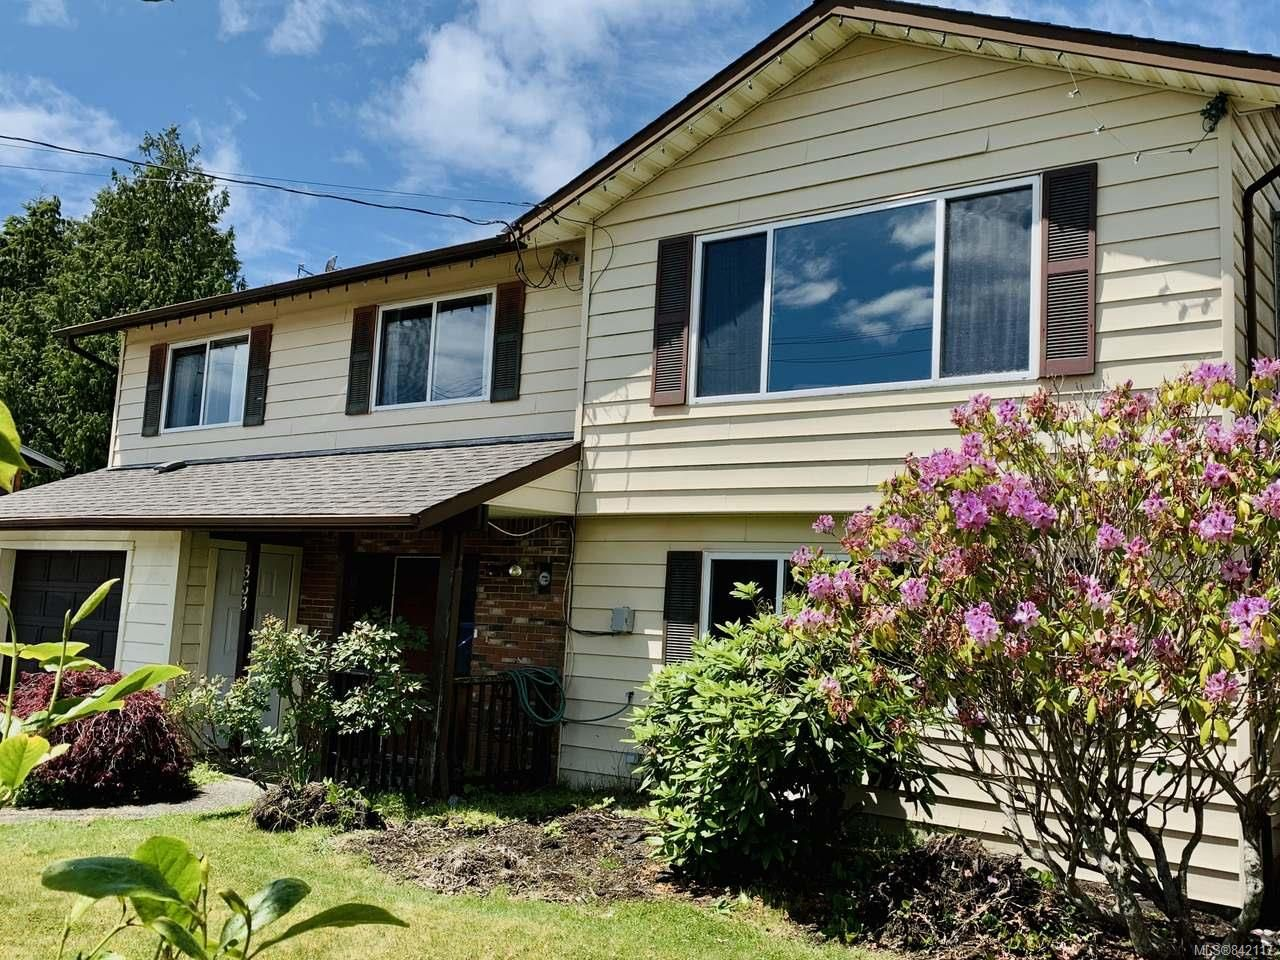 Main Photo: 353 Yew St in UCLUELET: PA Ucluelet House for sale (Port Alberni)  : MLS®# 842117